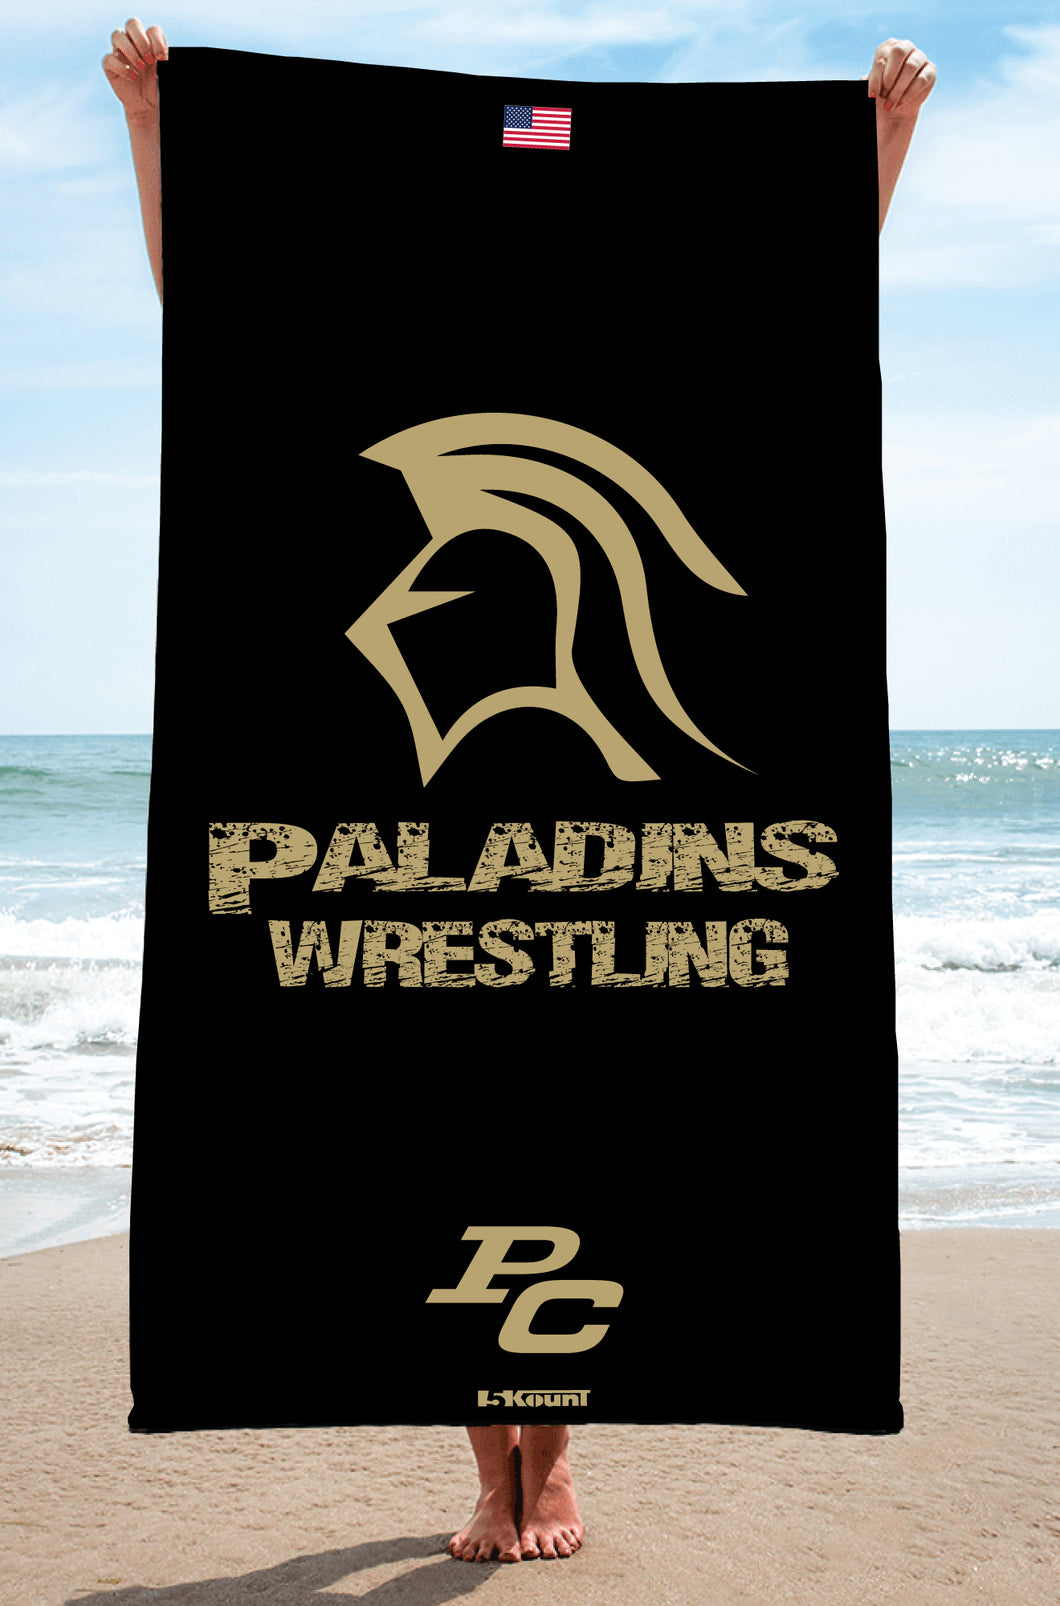 Paramus Catholic Wrestling Sublimated Beach Towel